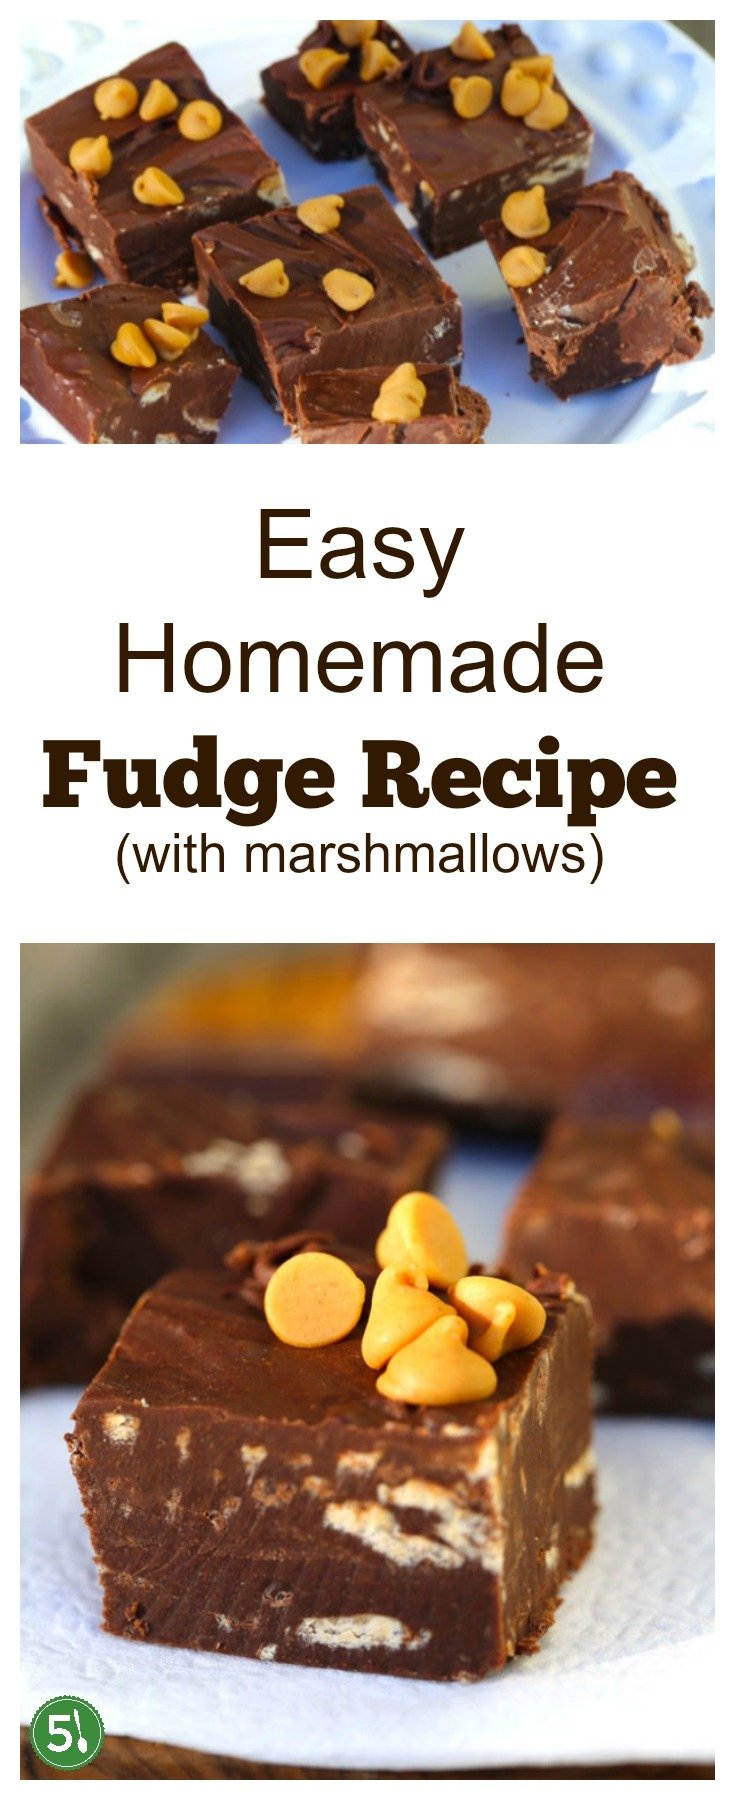 Easy chocolate fudge recipe with 3 ingredients including semi sweet chocolate chips, sweetened condensed milk, and marshmallows.  SO simple to whip up and beyond delicious!